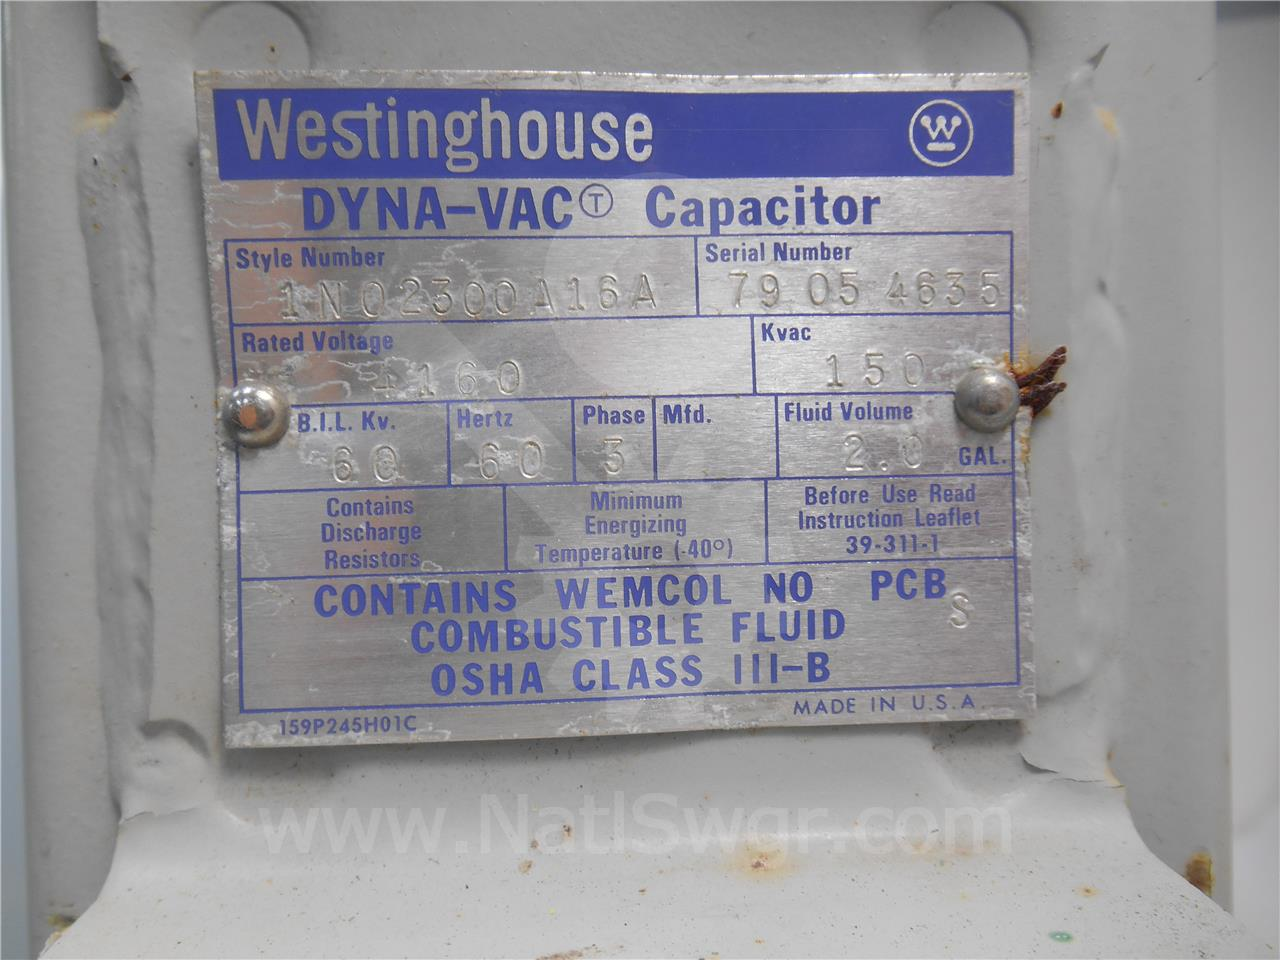 1N02300A16A Westinghouse THREE PHASE CAPACITOR BANK 4160V, 150KVAR, 60KV BIL